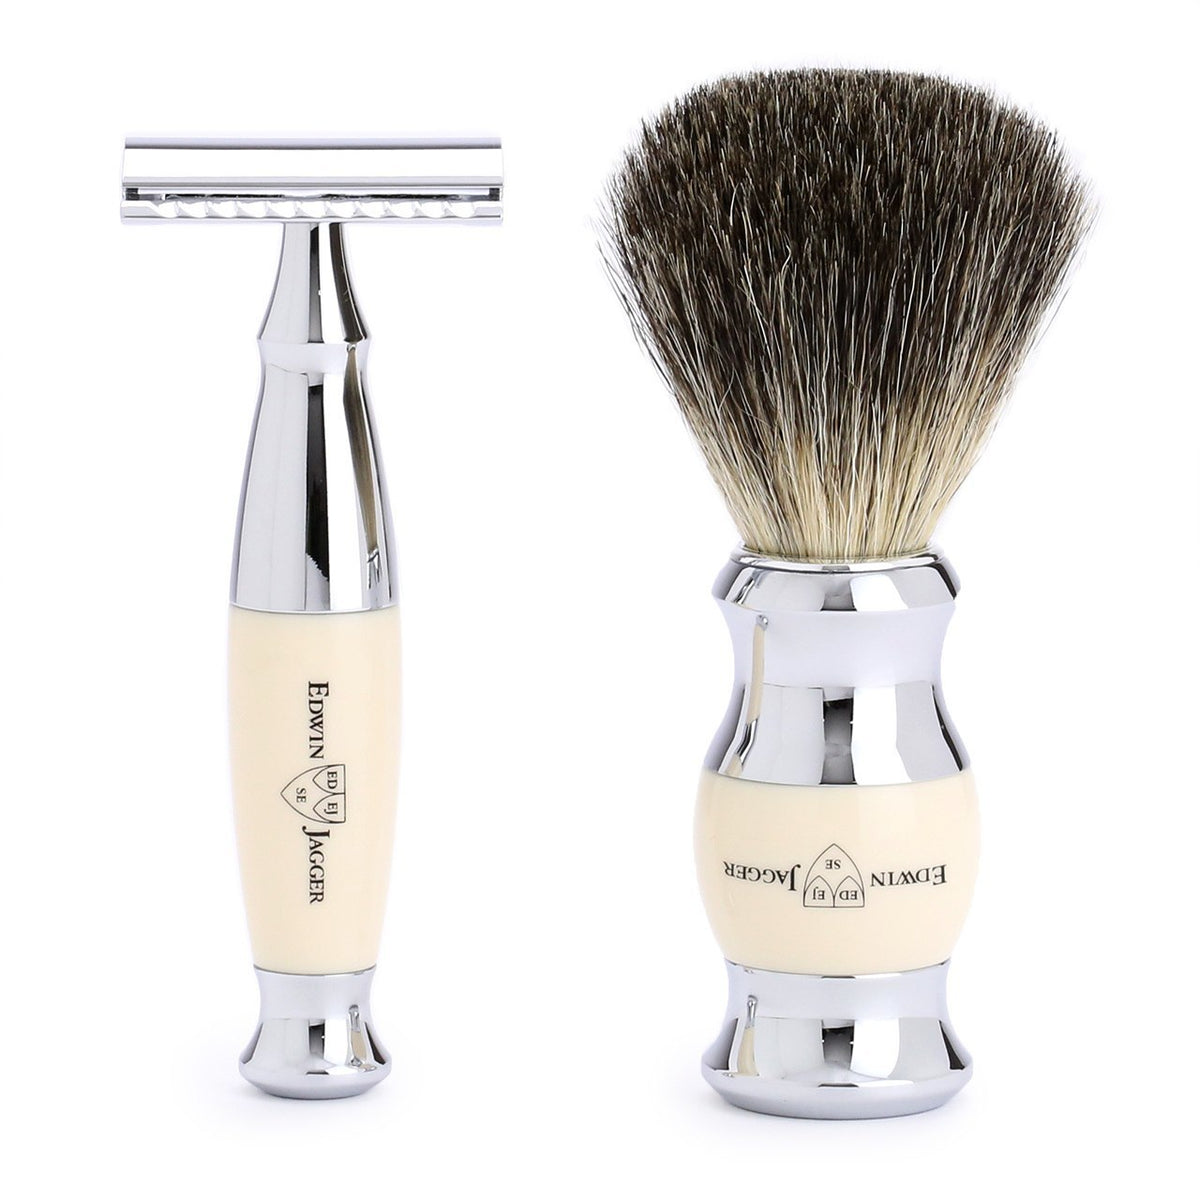 Edwin Jagger 3 Piece Chrome Plated Shaving Set - Ivory